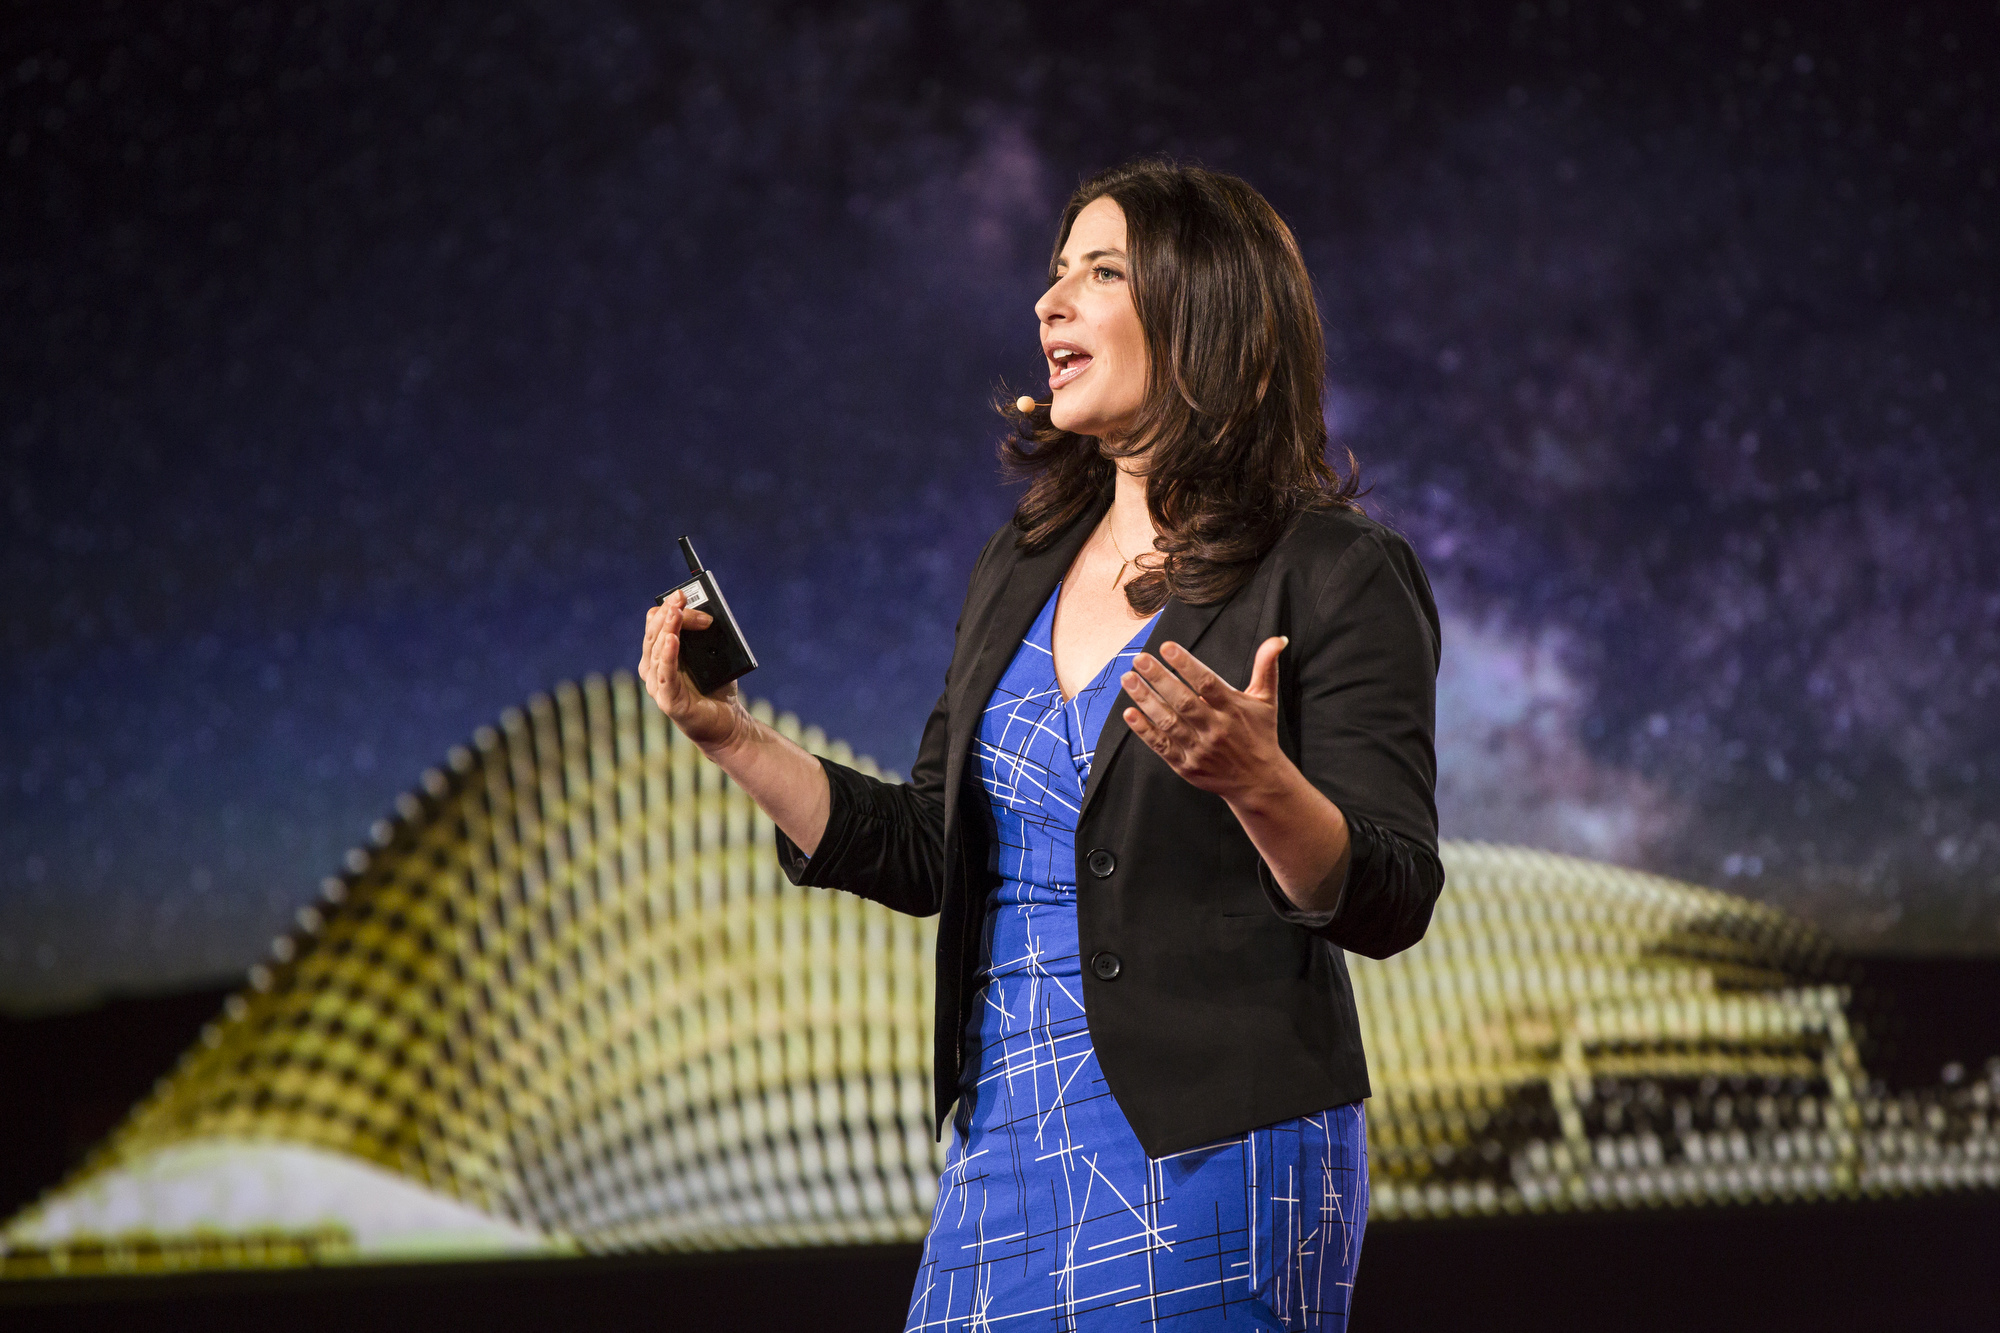 Rachel Pritzker at TED University. TED2016. February 15-19, 2016, Vancouver Convention Center, Vancouver, Canada. Photo: Ryan Lash / TED